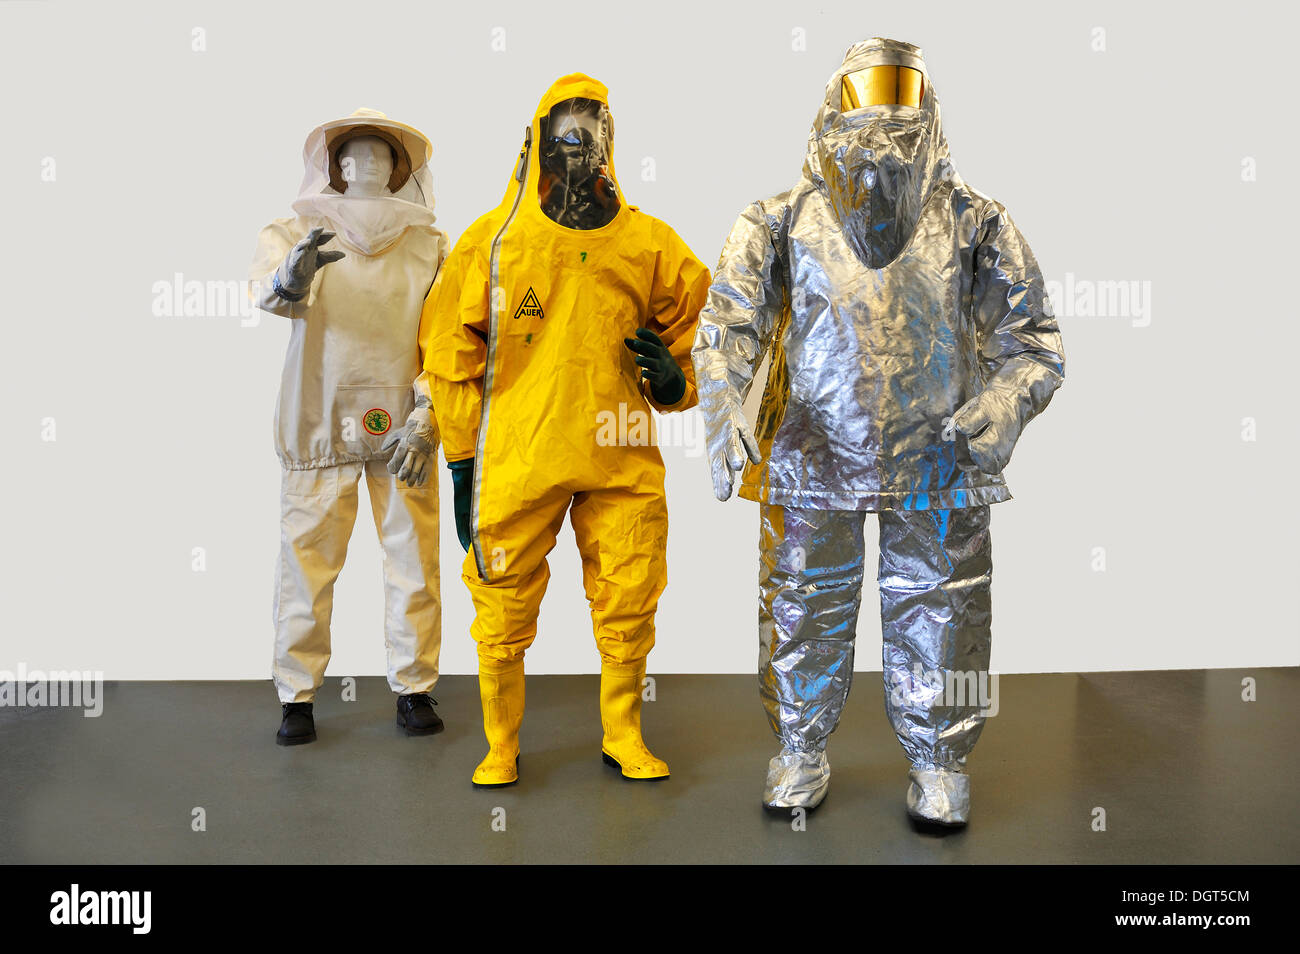 three contemporary suits from the fire department insect protective